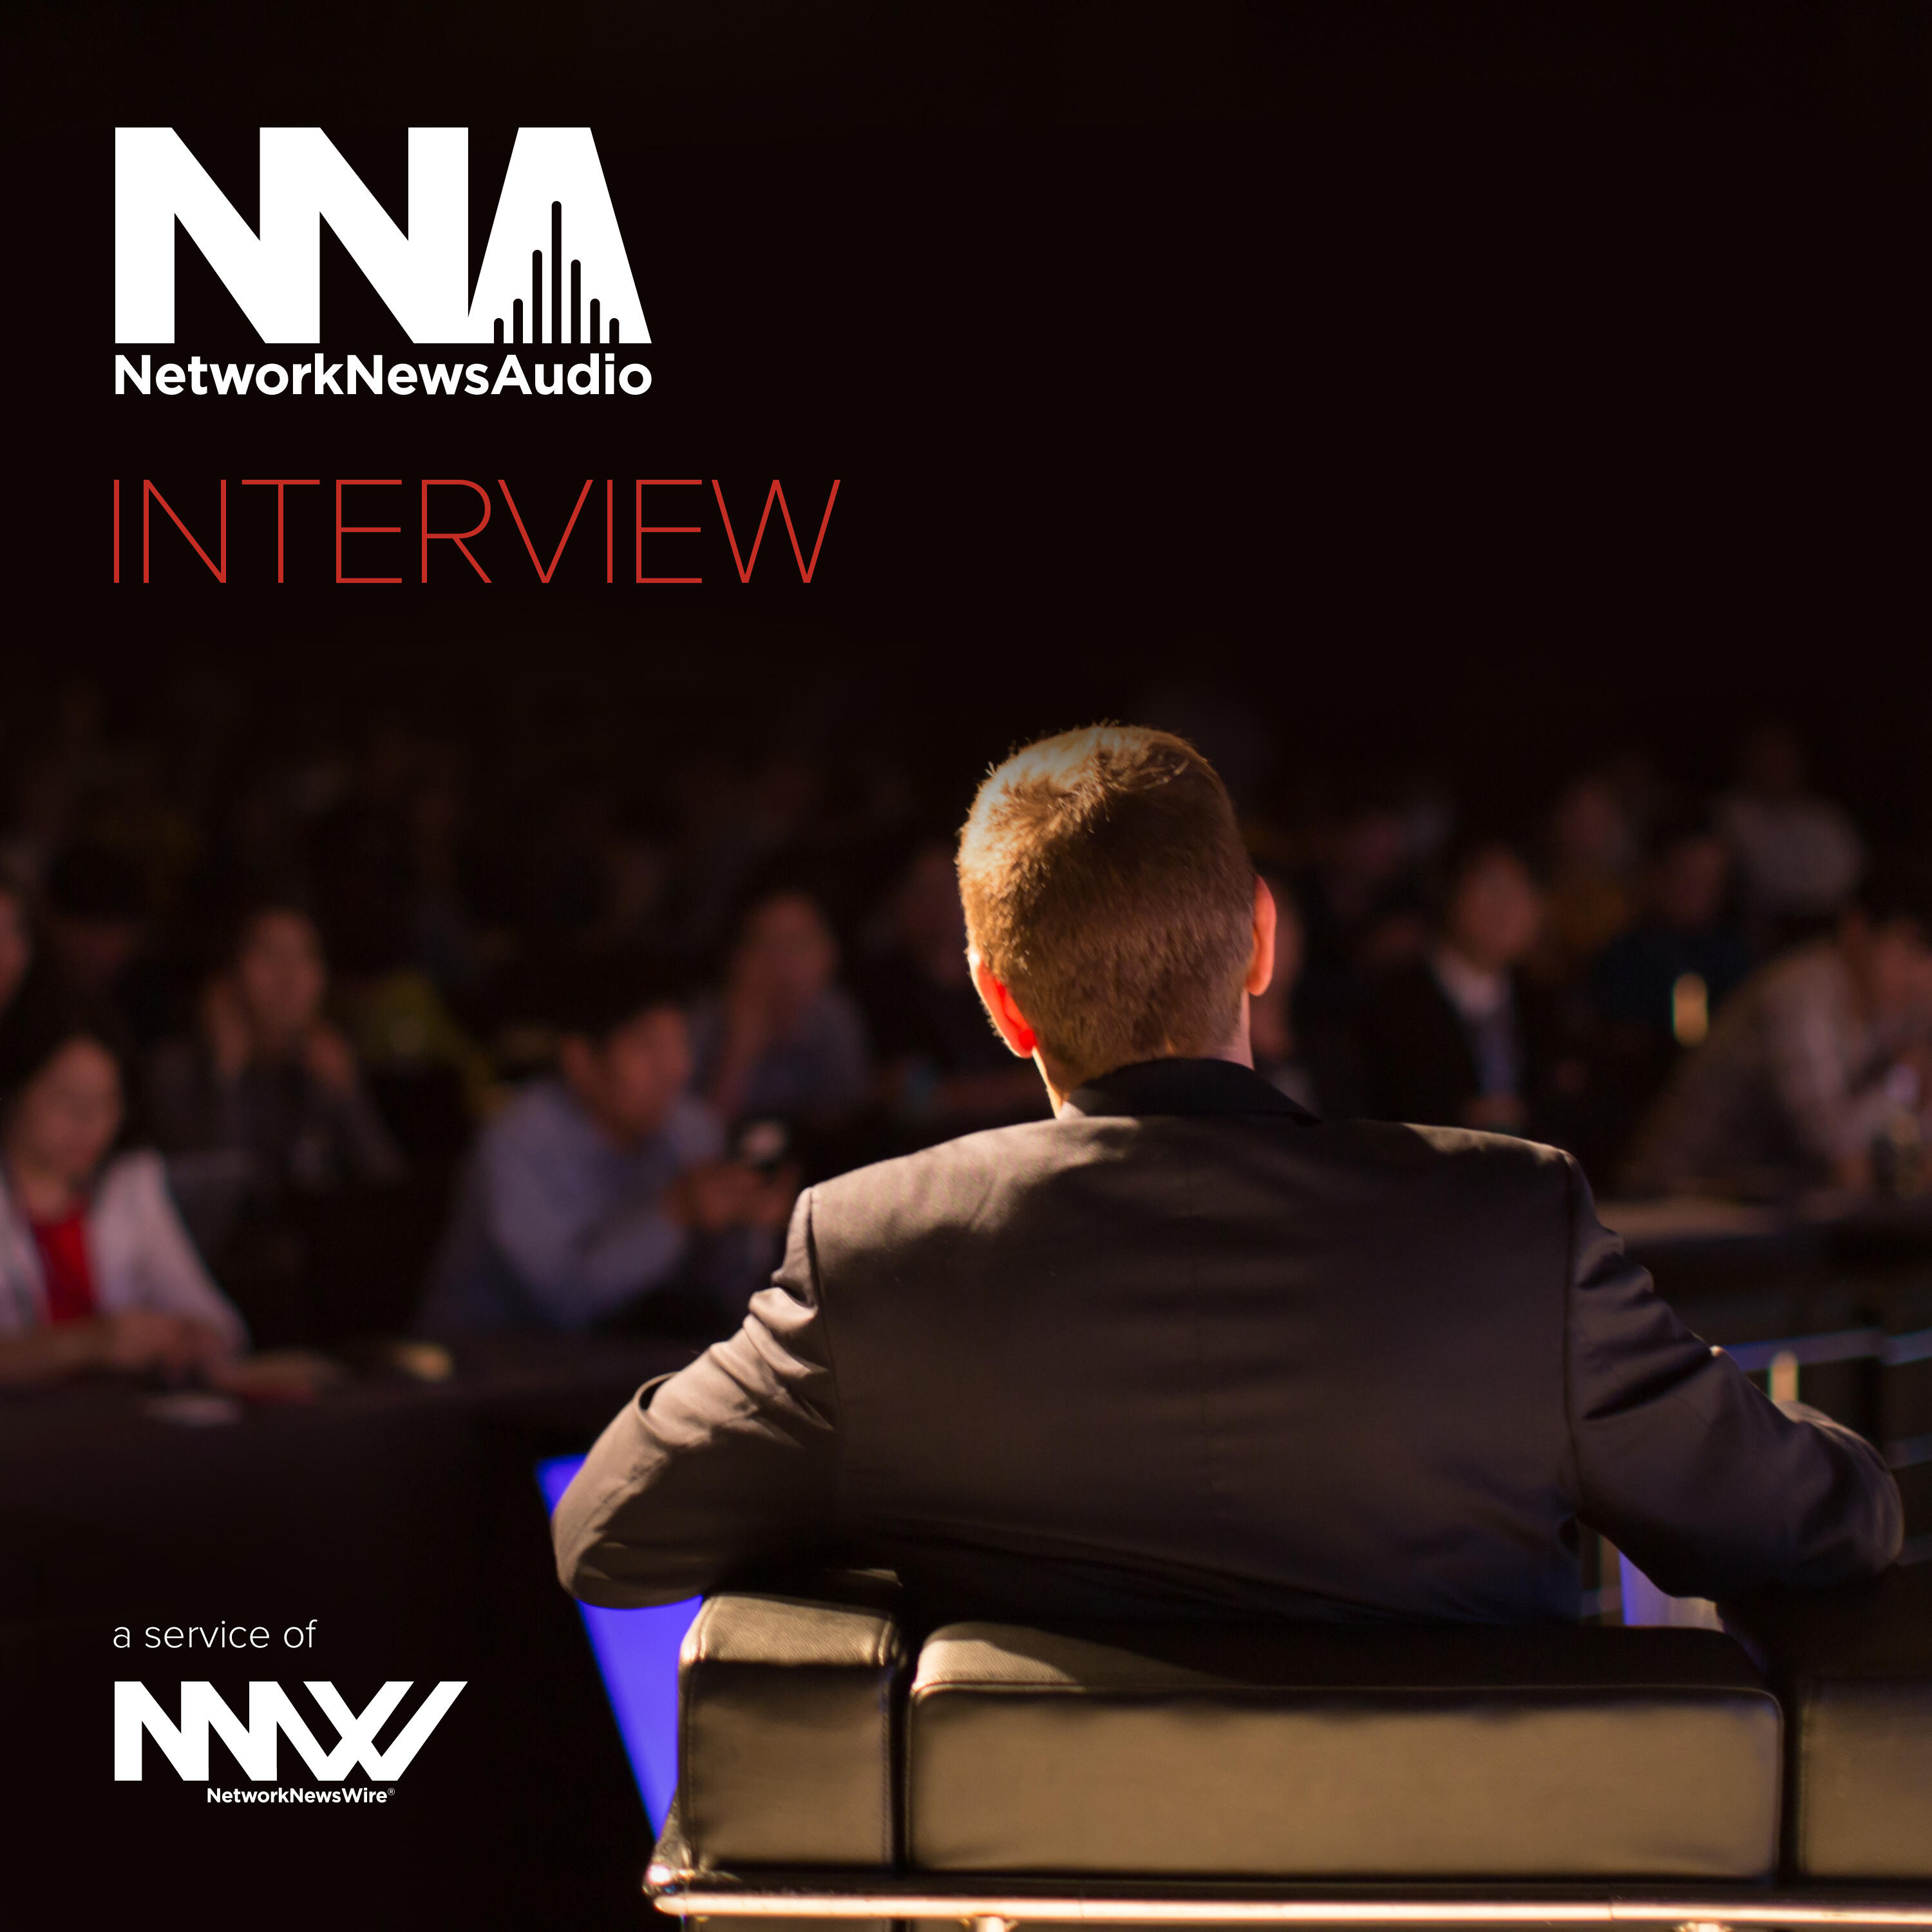 The NetworkNewsAudio Interviews Podcast